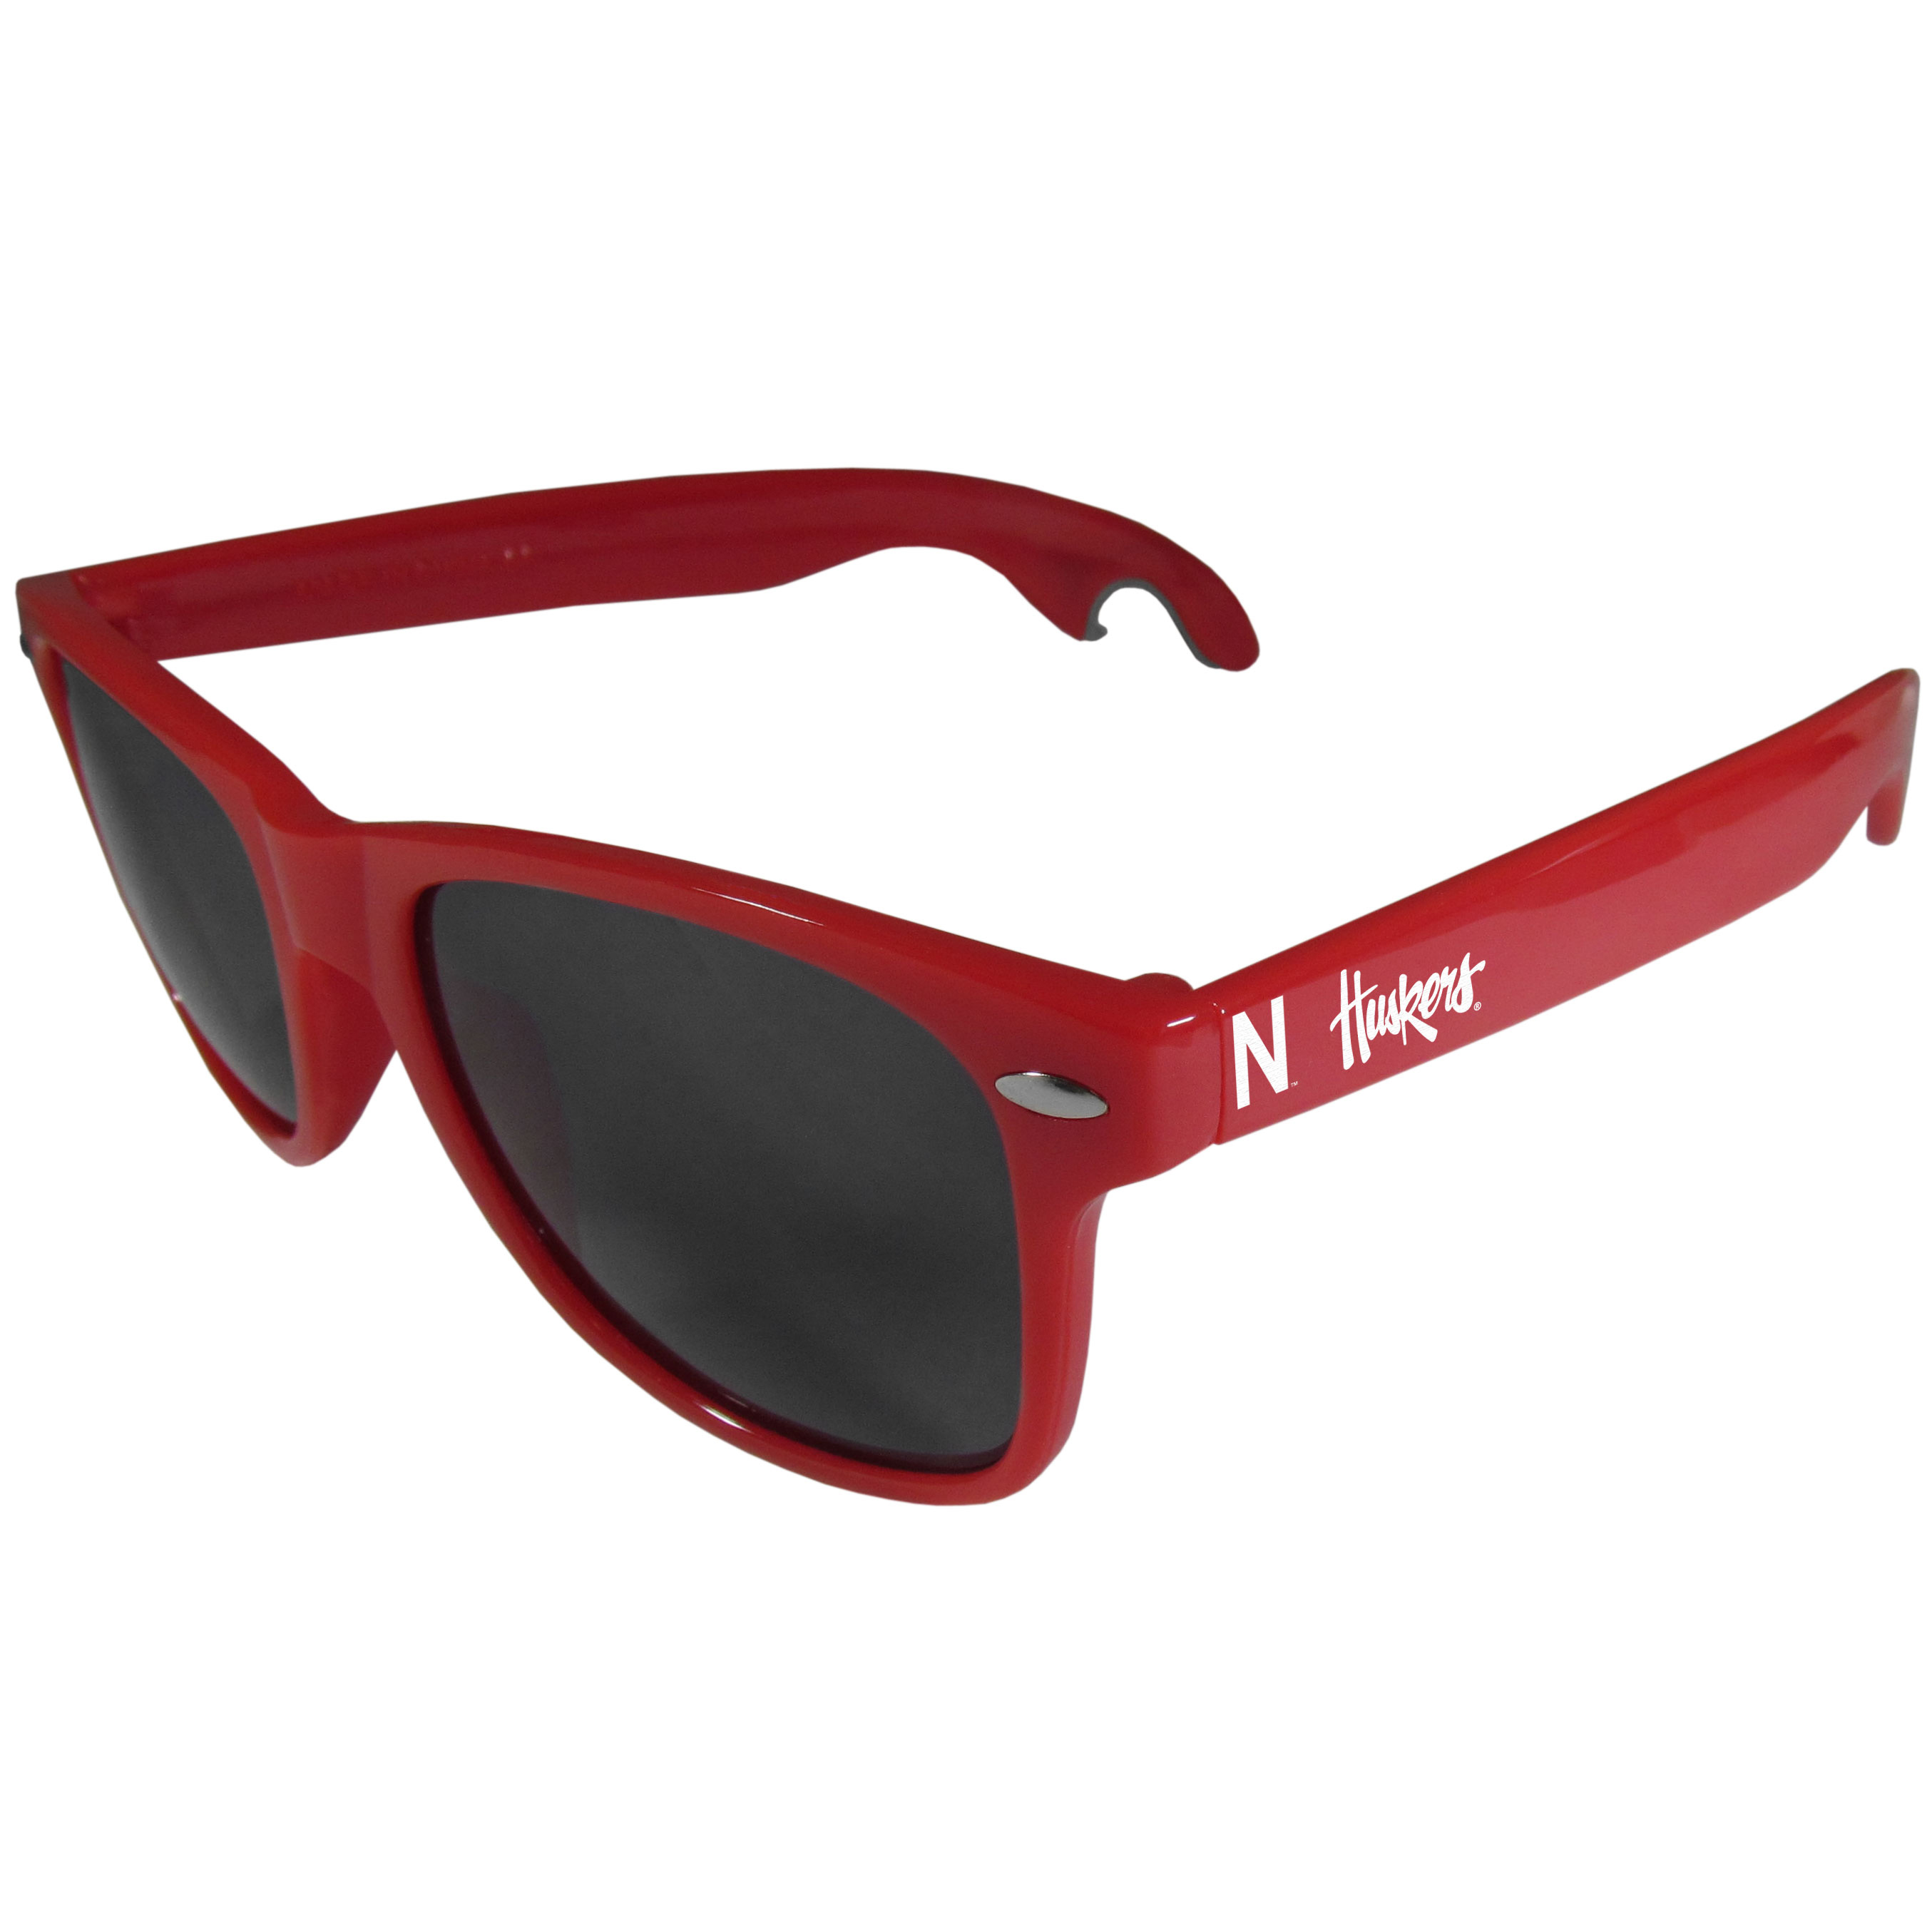 Nebraska Cornhuskers Beachfarer Bottle Opener Sunglasses, Red - Seriously, these sunglasses open bottles! Keep the party going with these amazing Nebraska Cornhuskers bottle opener sunglasses. The stylish retro frames feature team designs on the arms and functional bottle openers on the end of the arms. Whether you are at the beach or having a backyard BBQ on game day, these shades will keep your eyes protected with 100% UVA/UVB protection and keep you hydrated with the handy bottle opener arms.